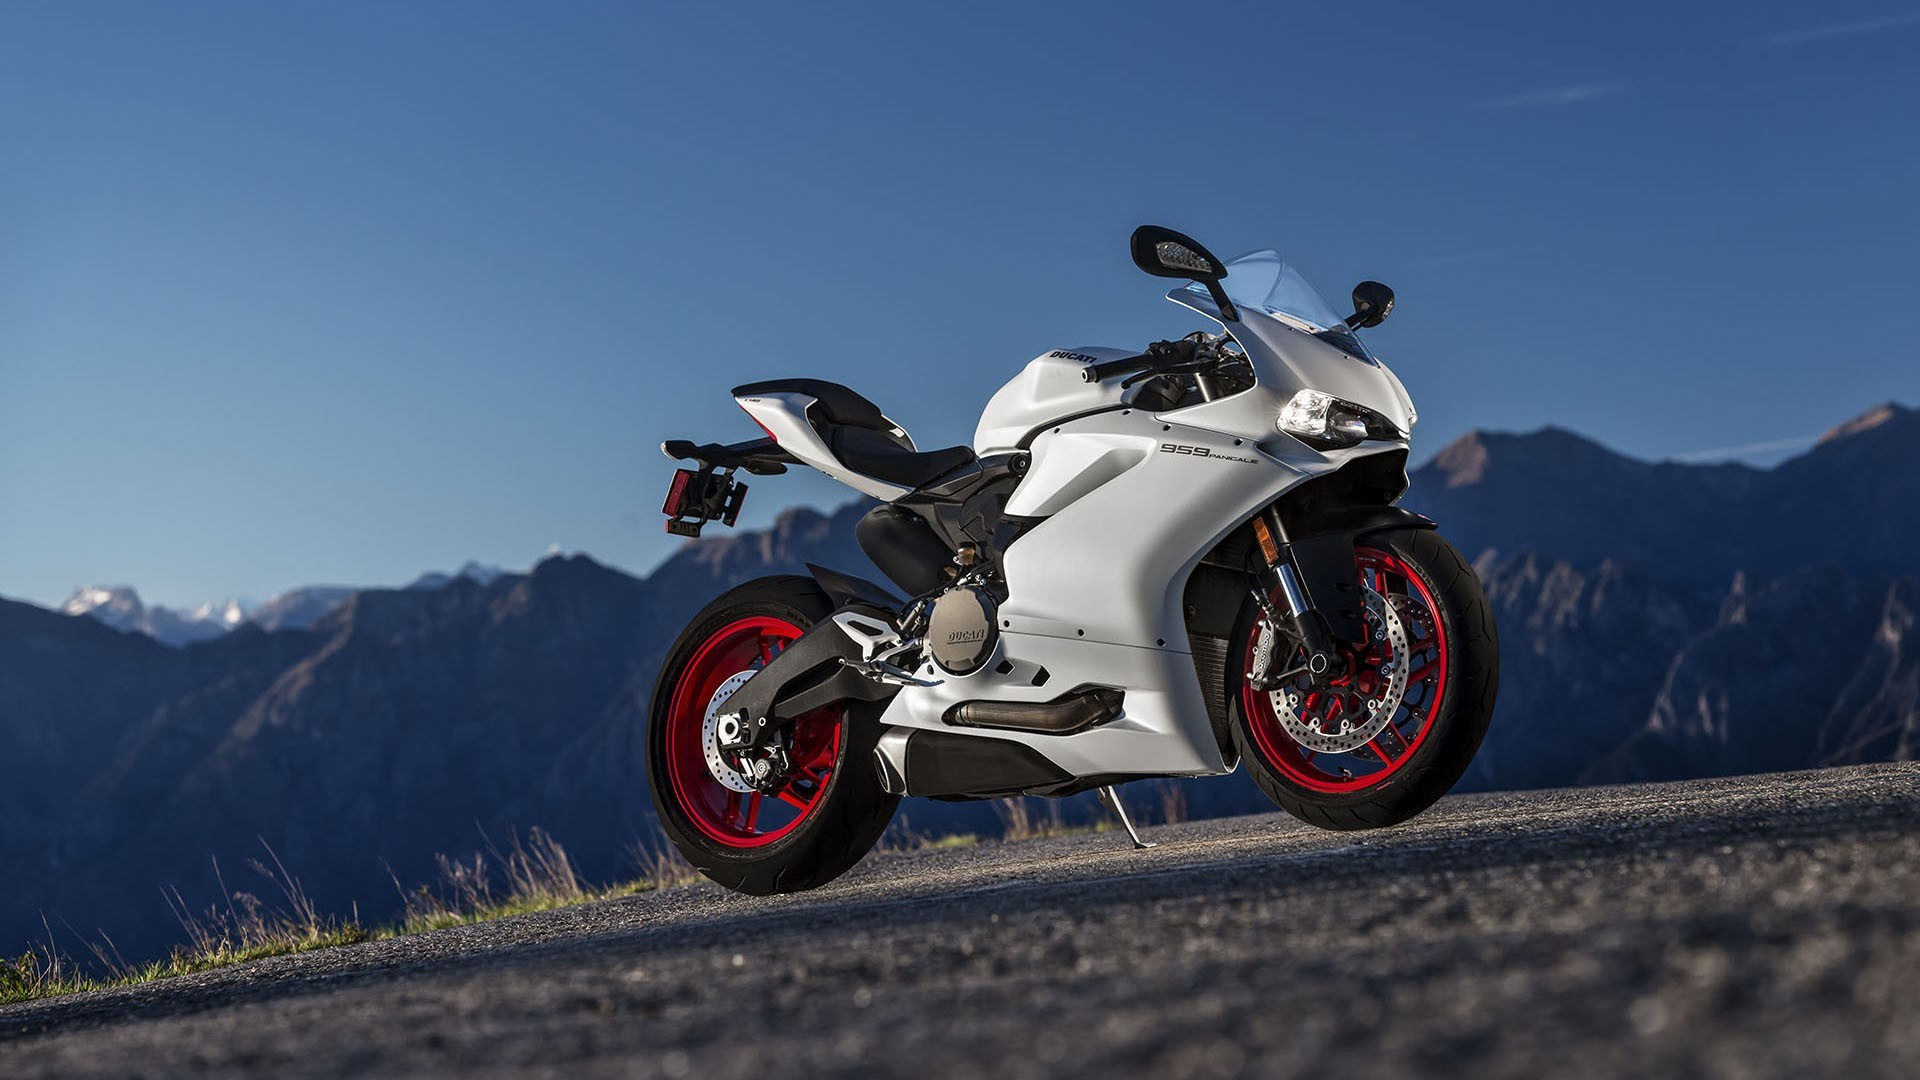 Unique Ducati Panigale V4S Motorcycles to Sell on eBay After Race of